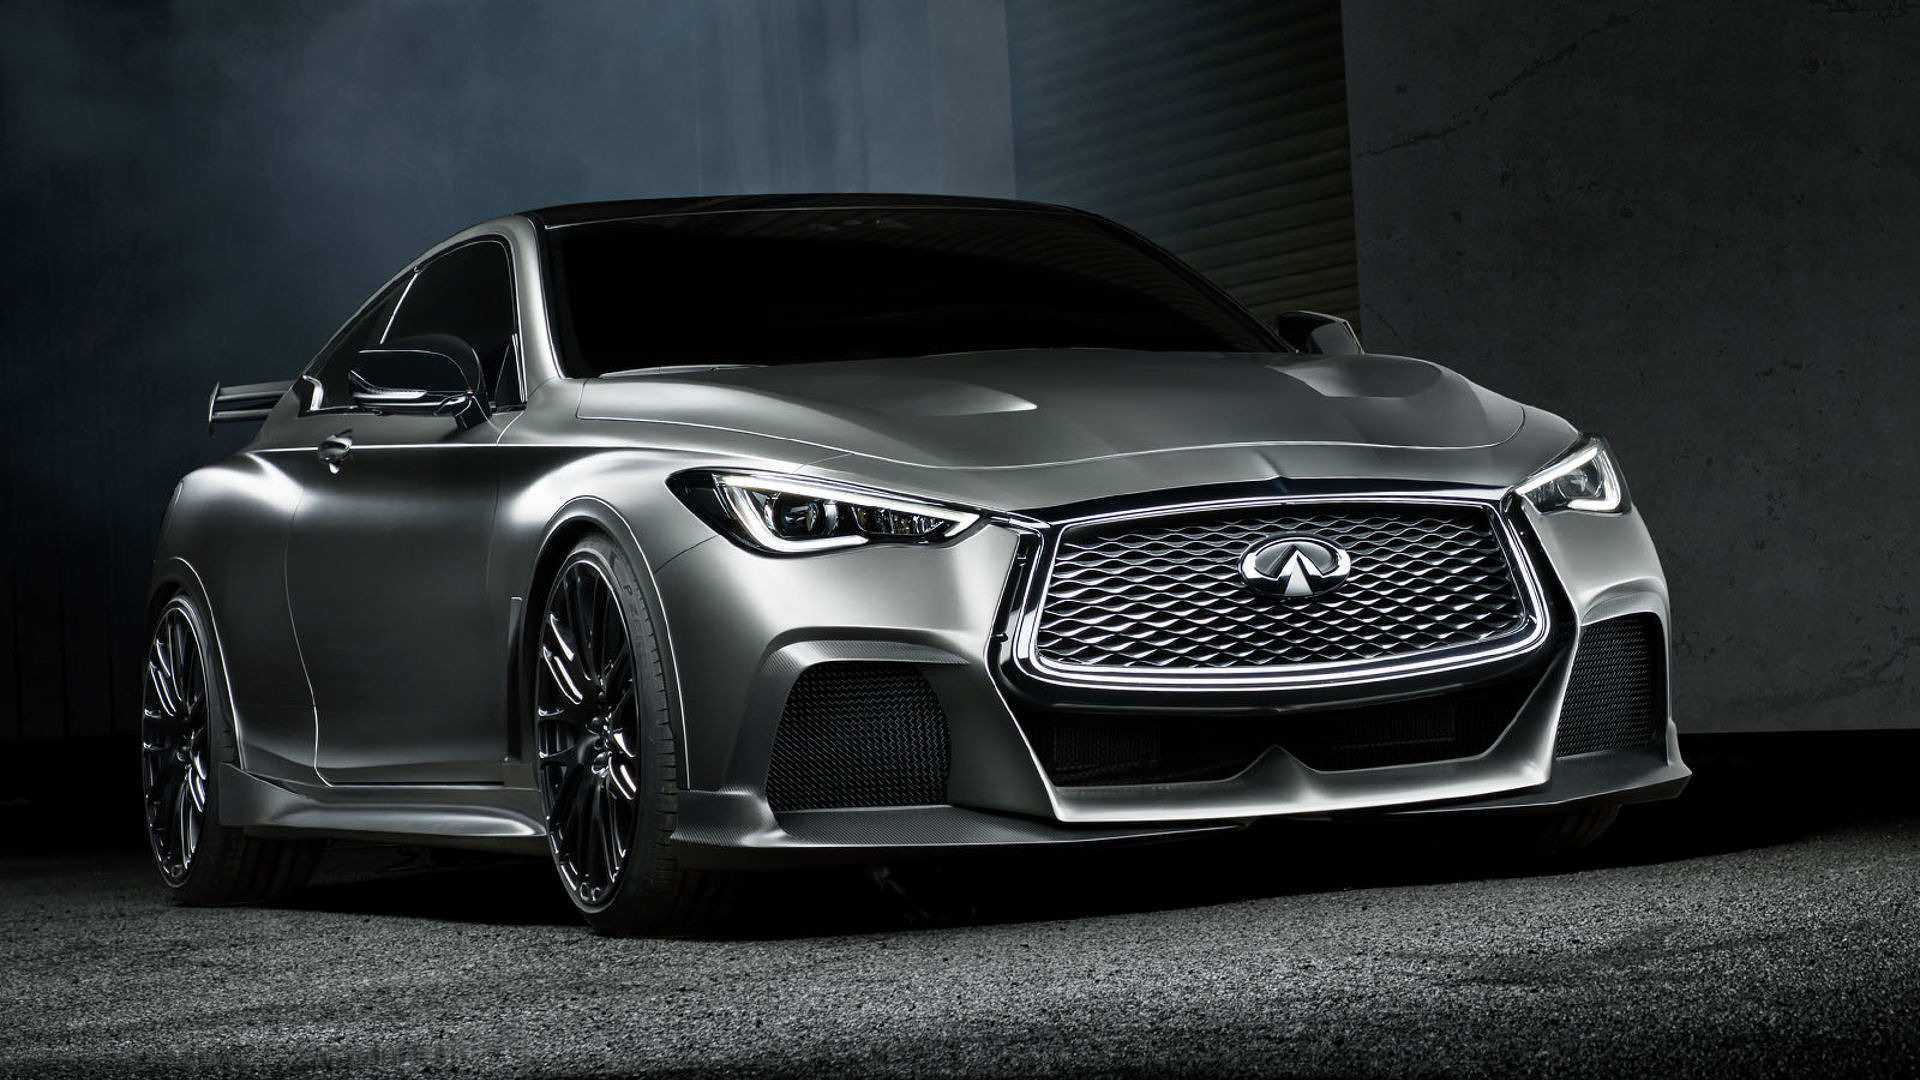 38 All New 2020 Infiniti Convertible Spesification for 2020 Infiniti Convertible